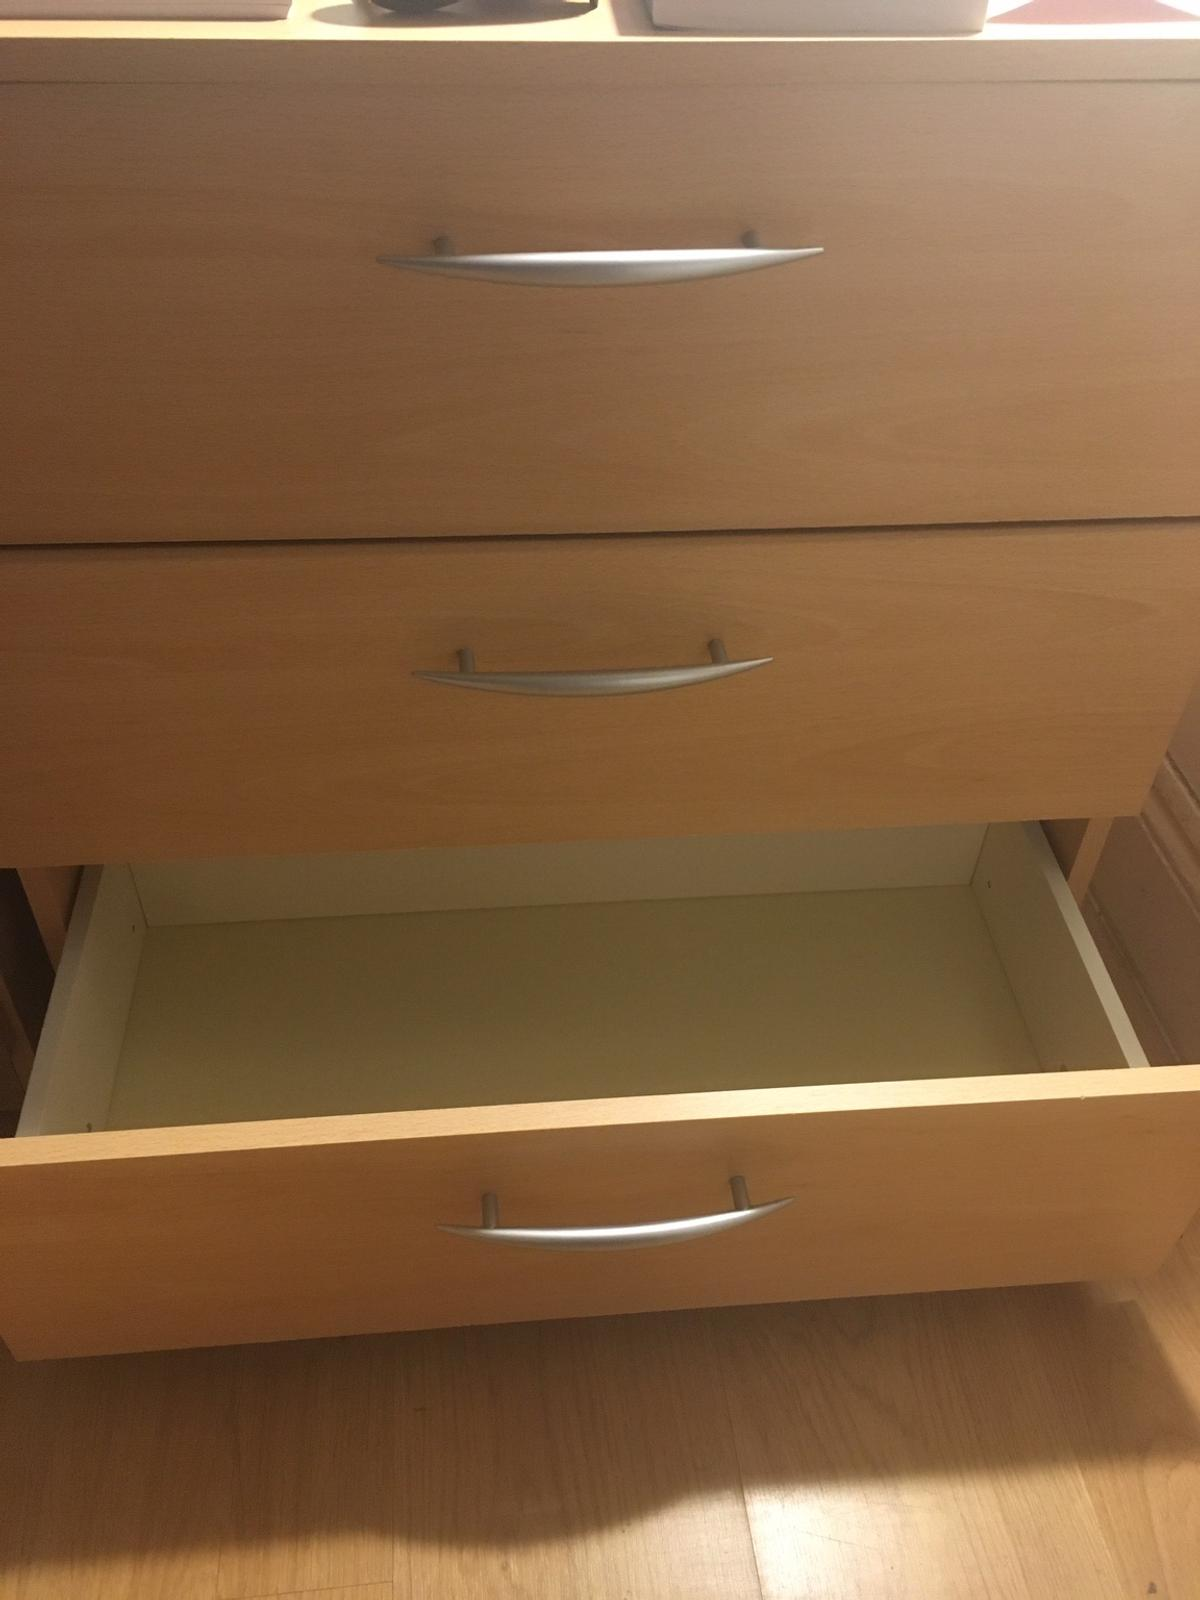 Measures are 35cm deep x 67 long x 64 high. 3 drawers. Good conditions